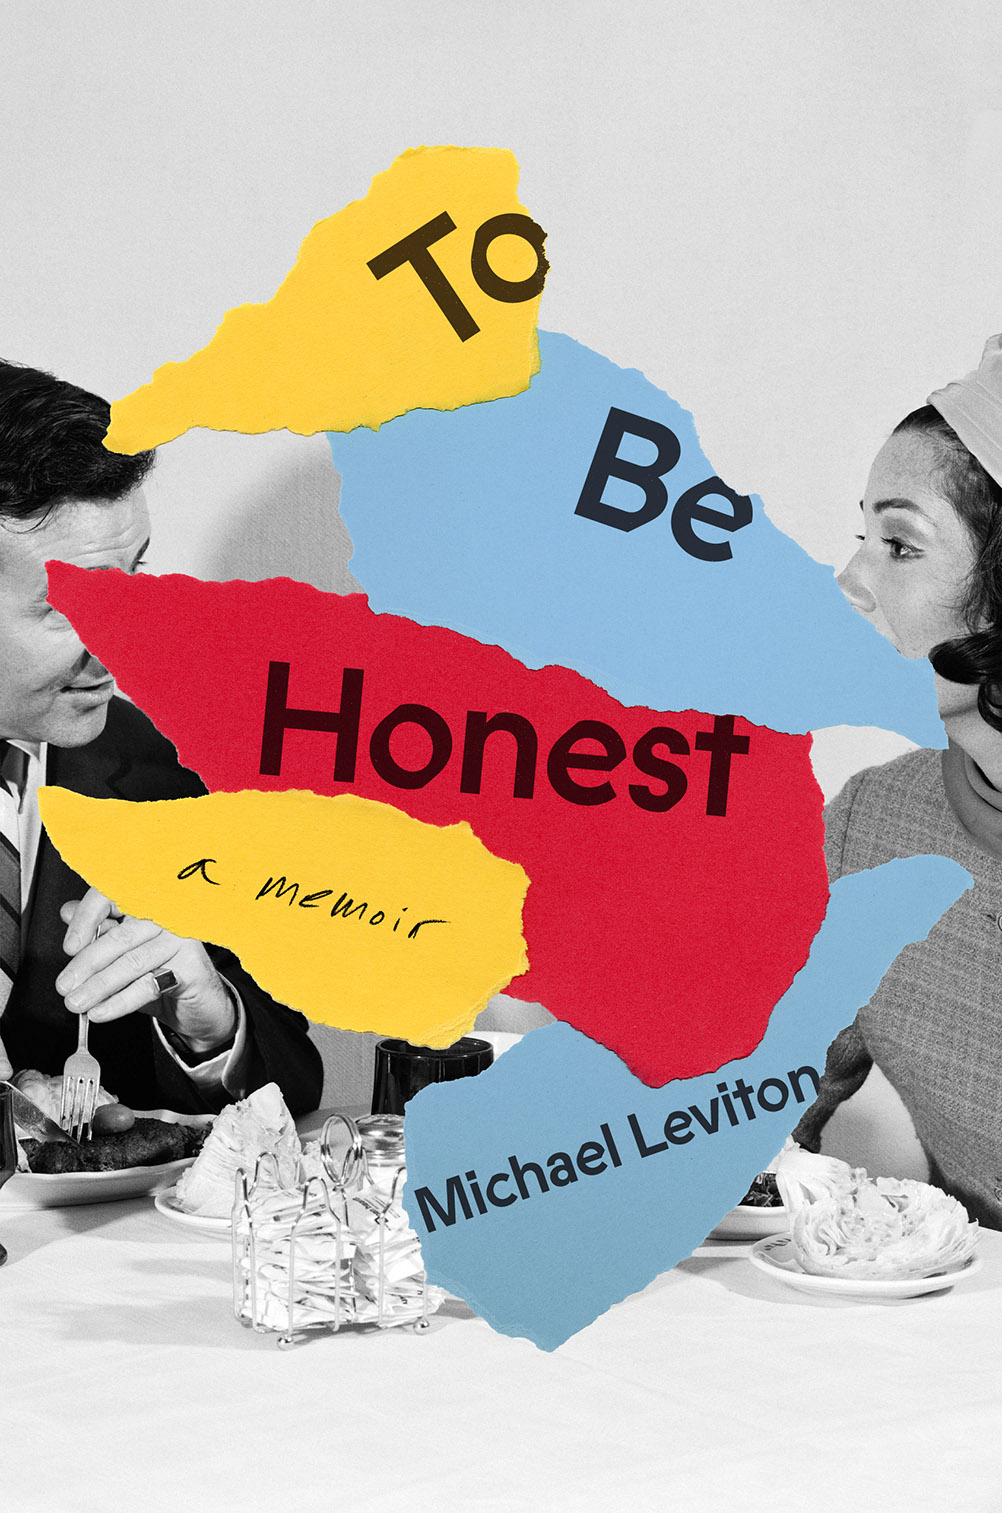 to be honest_michael leviton